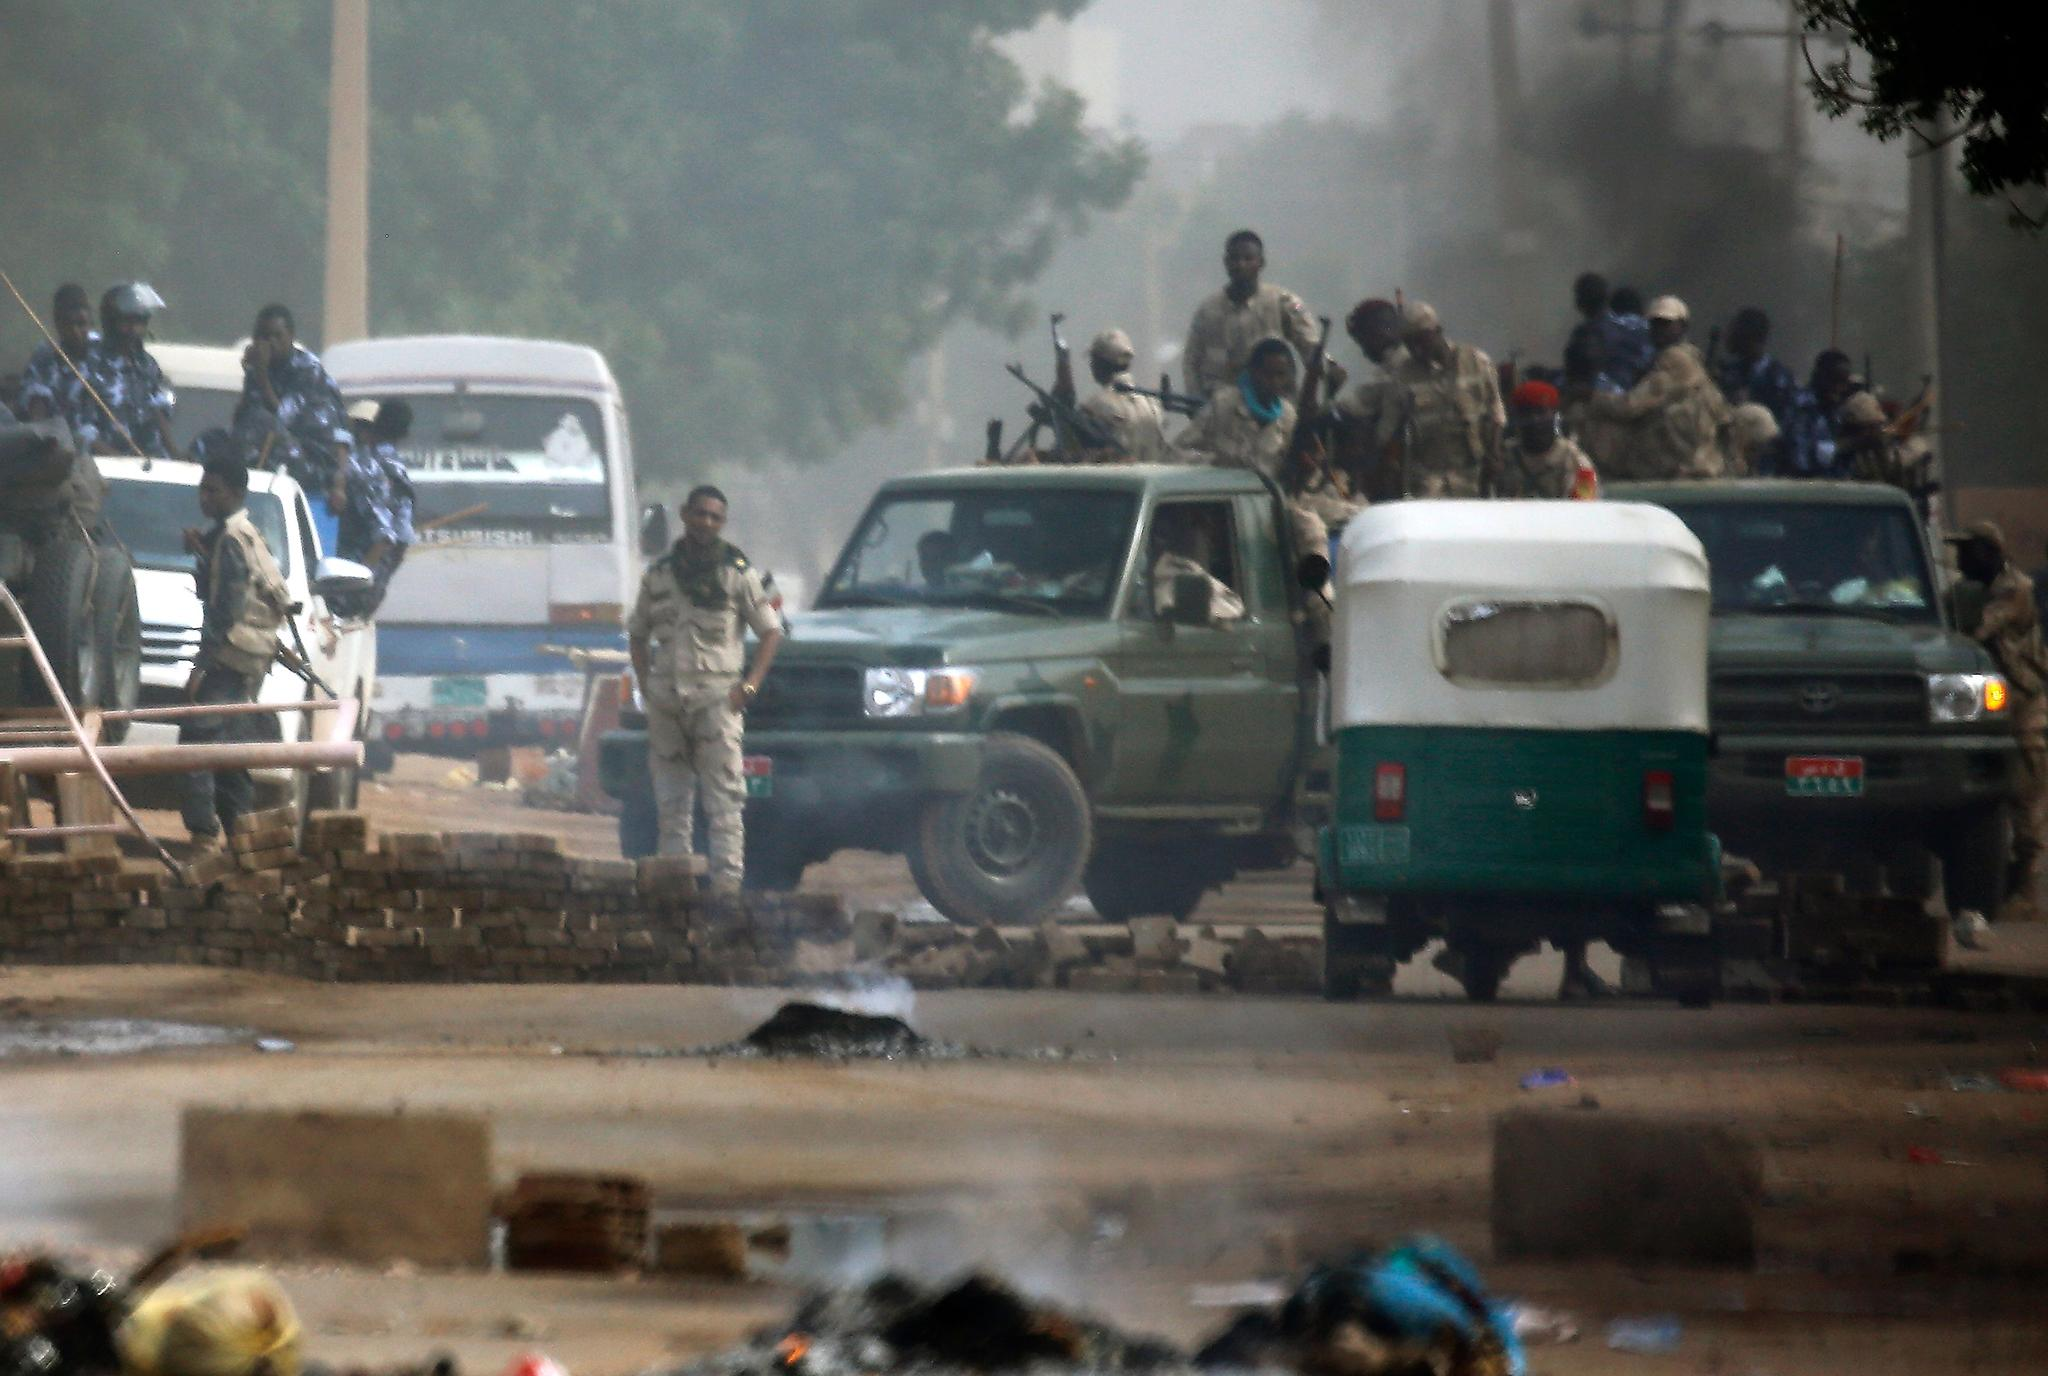 Sudan: Peaceful demonstrators under authorities' systematic targeting